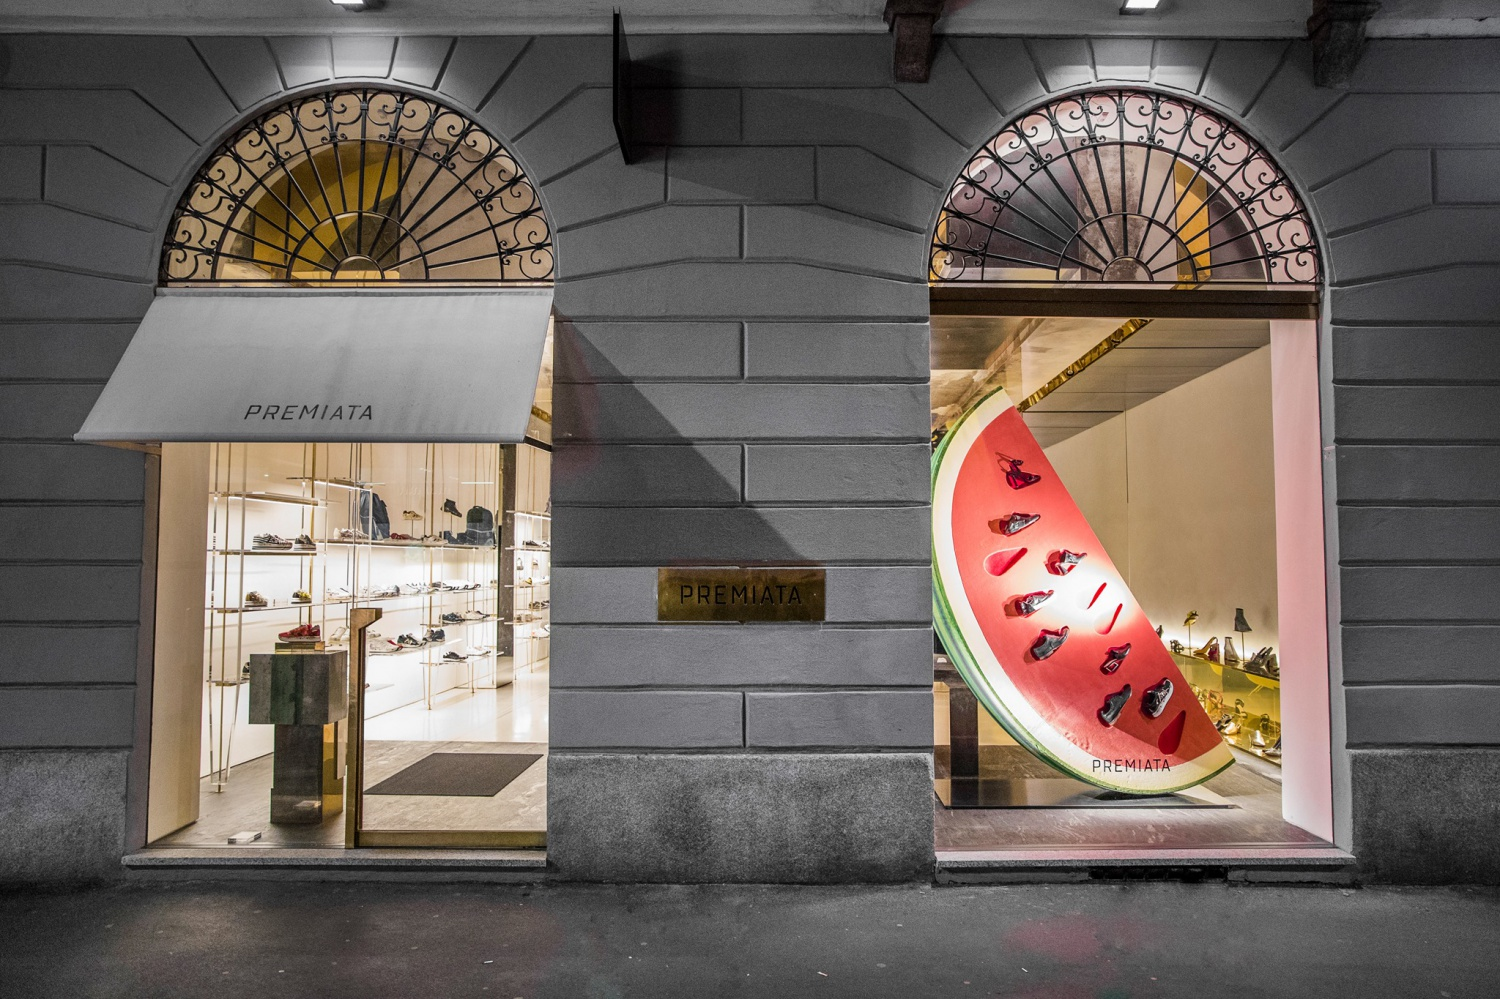 Premiata decorated a display case with a watermelon slice